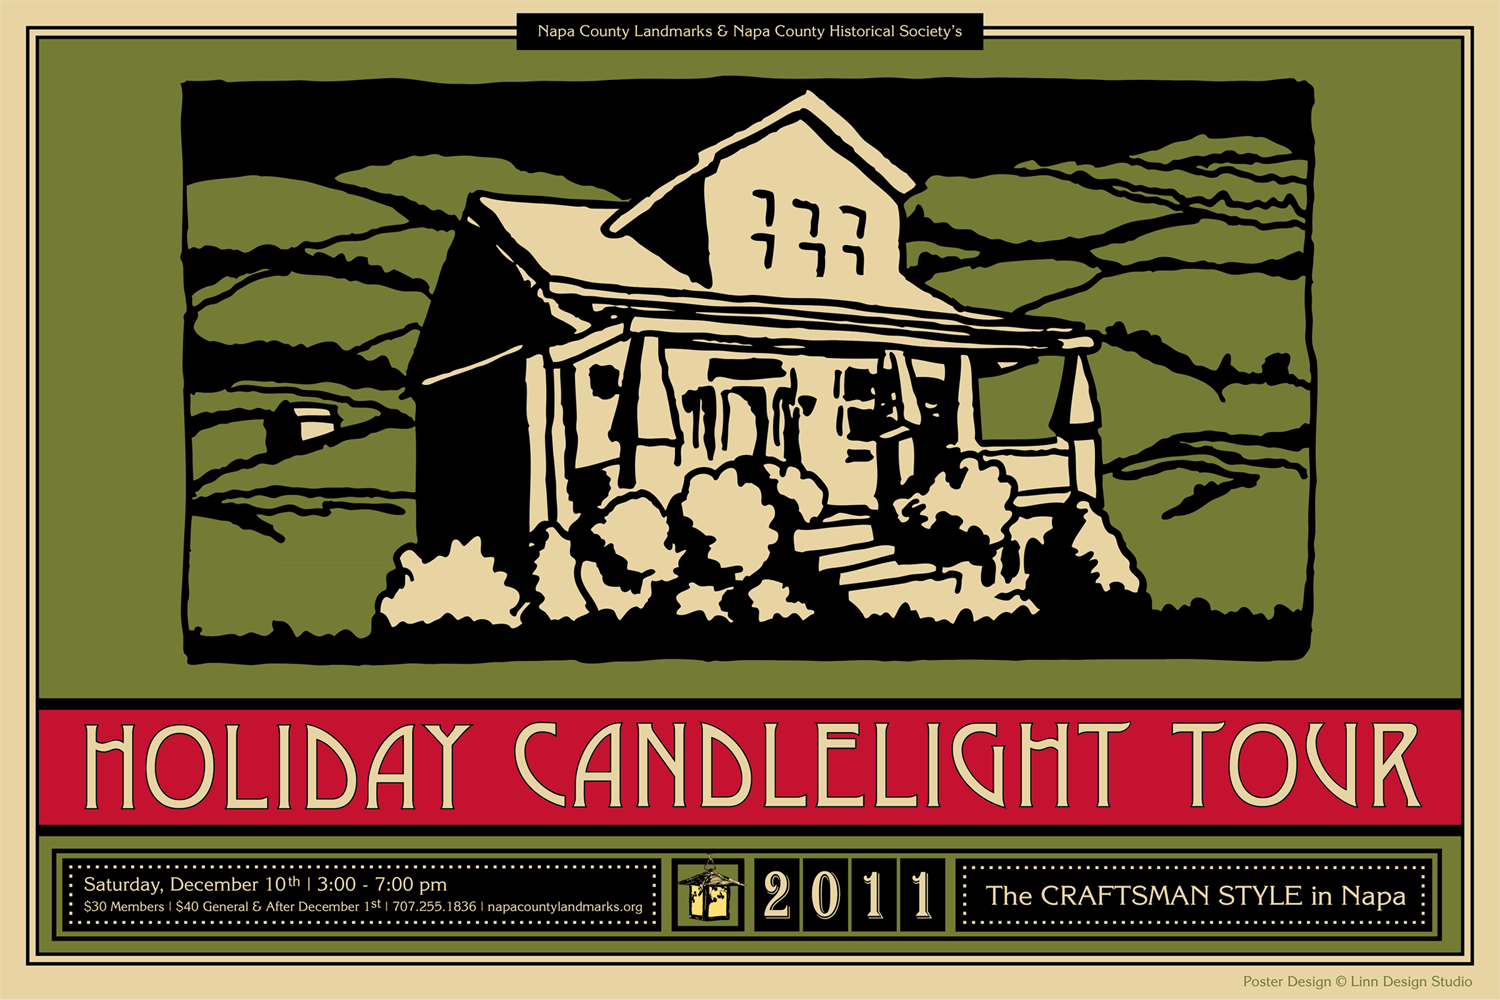 Poster Design for Napa County Landmarks Home Tour